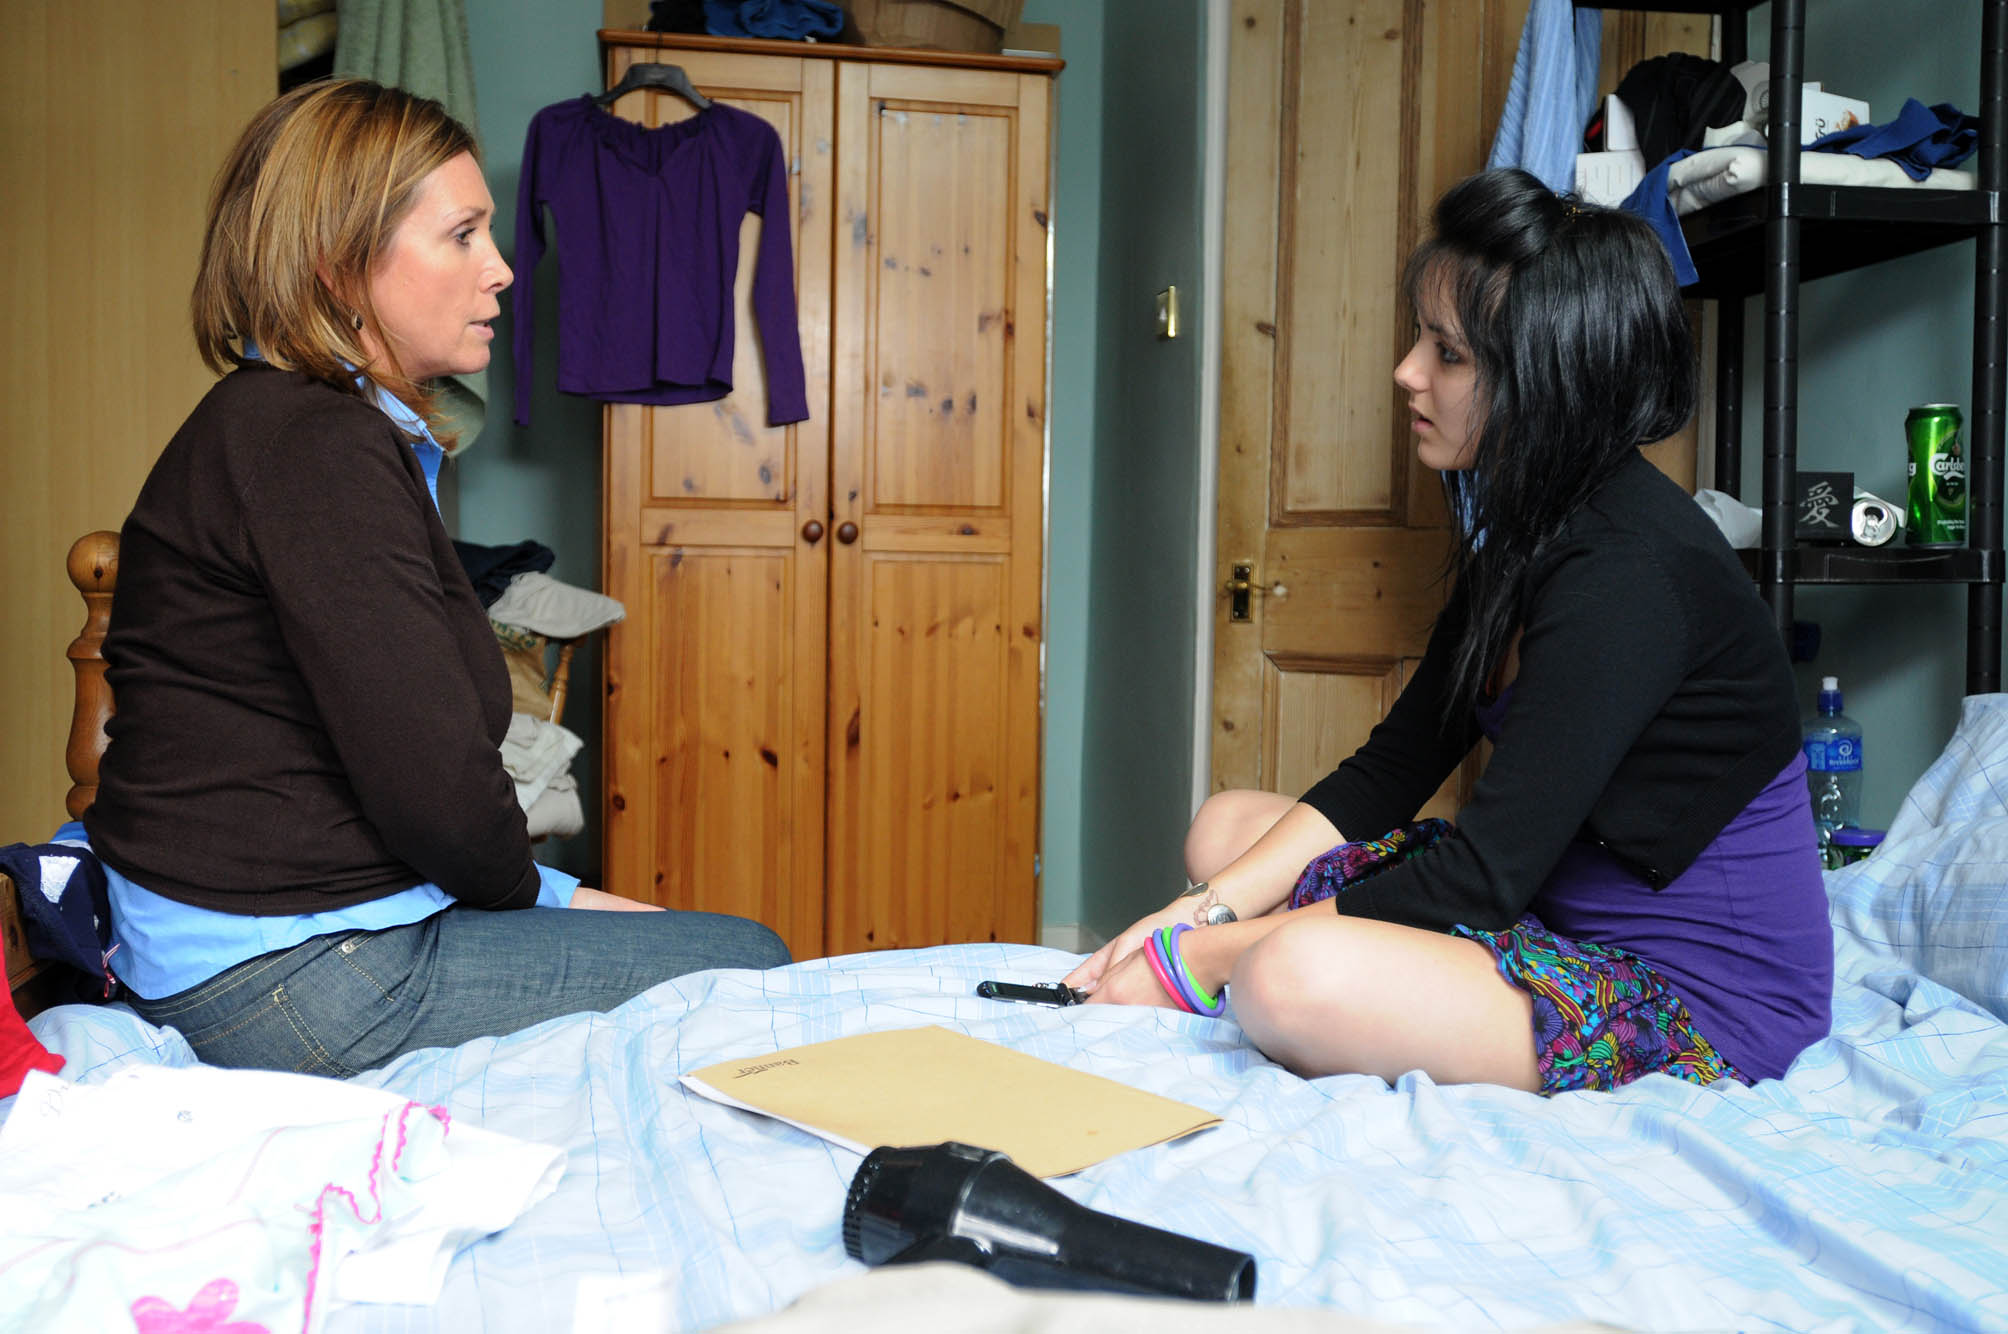 Can Jo stop another teen using drugs?